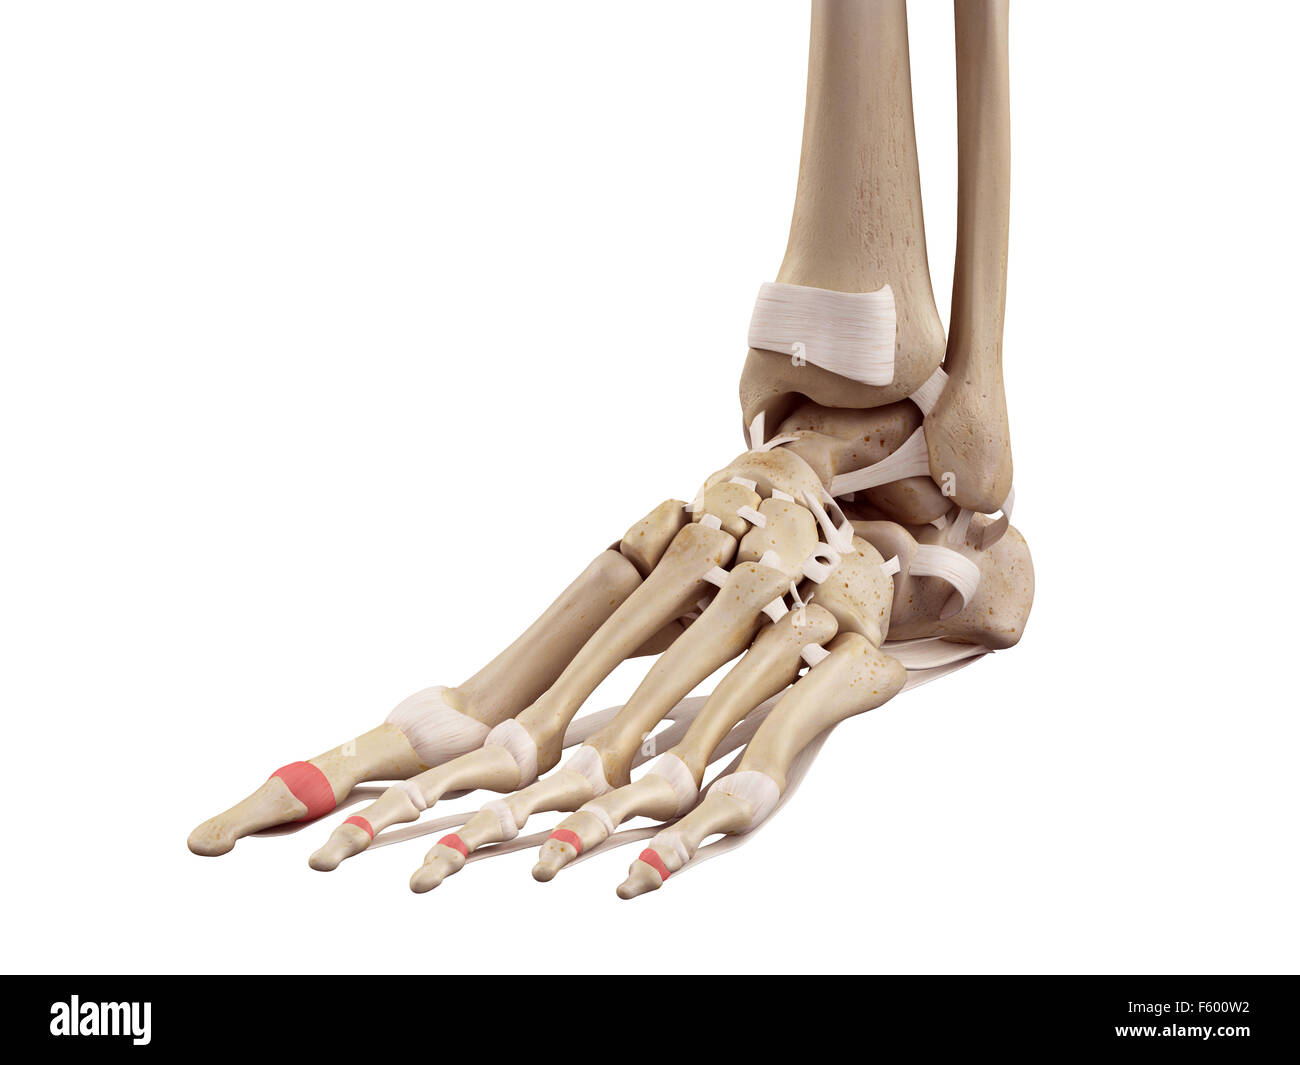 medical accurate illustration of the distal joint capsules - Stock Image